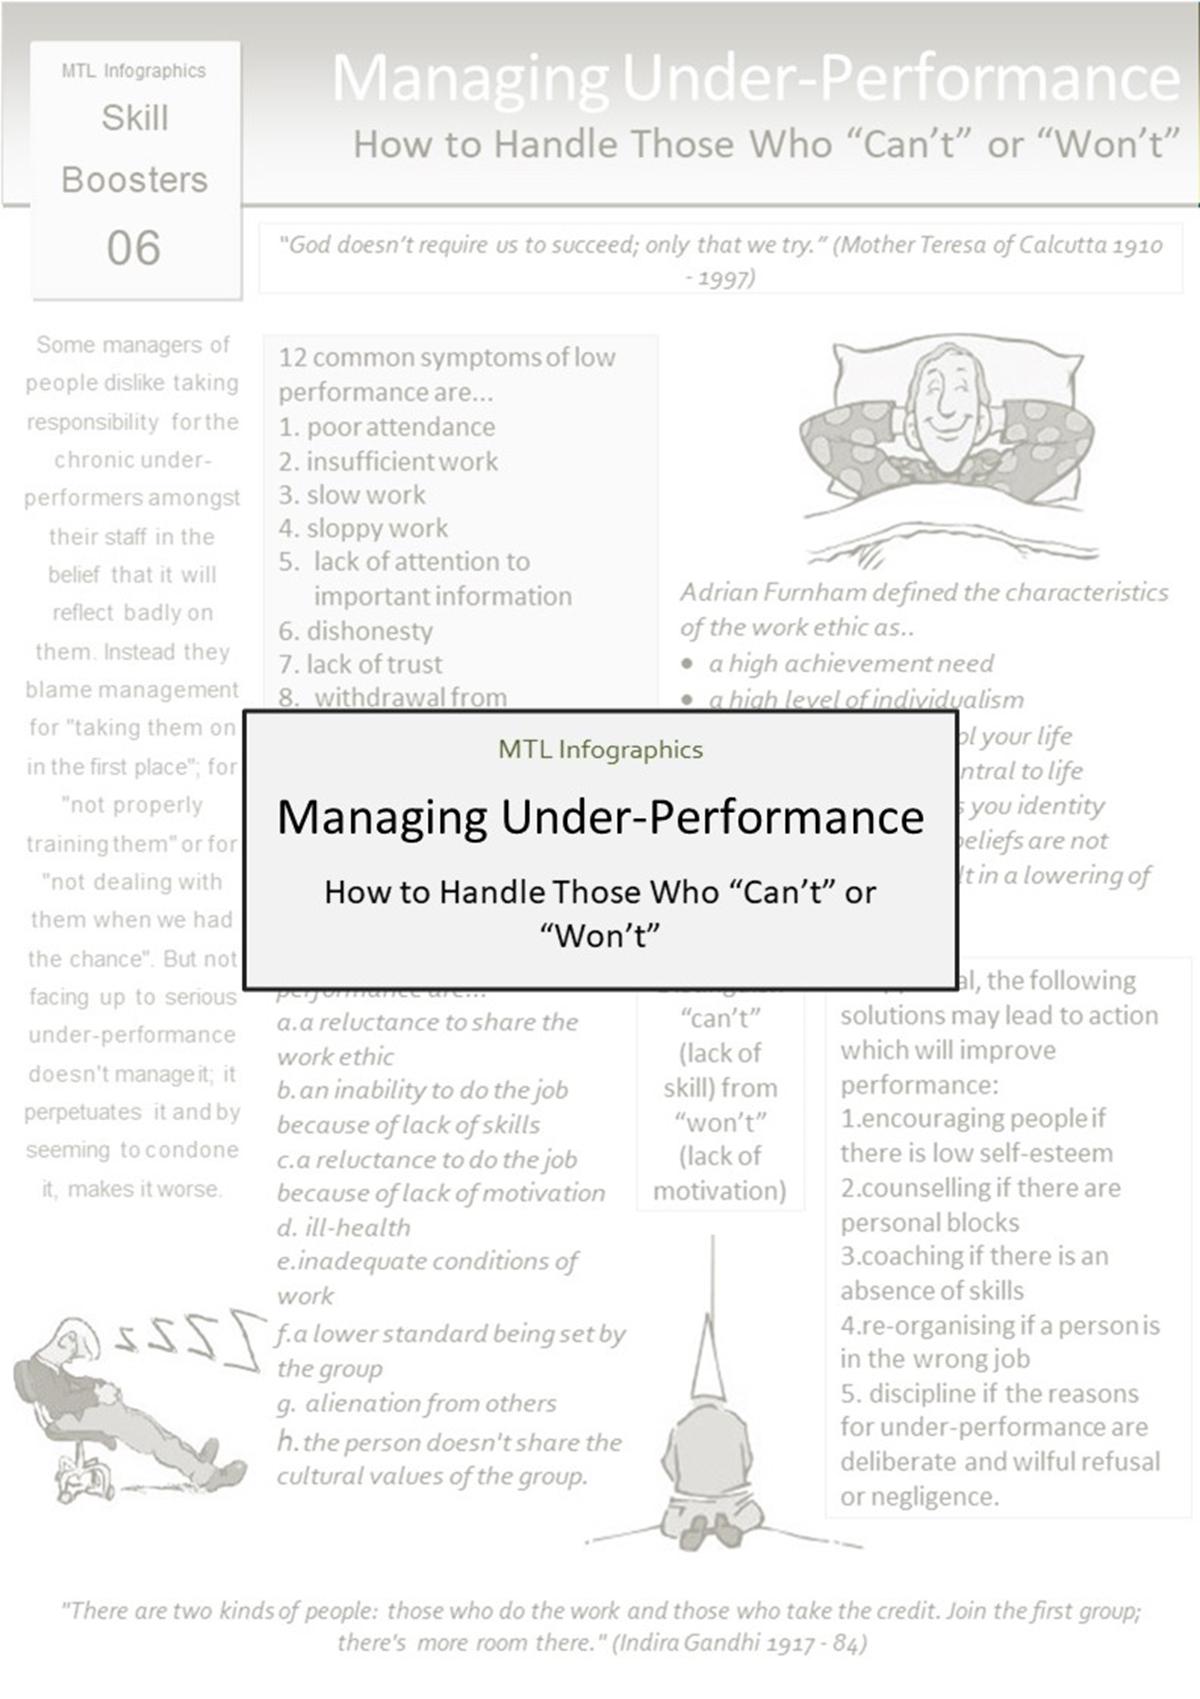 MTL Infographics Skill Boosters: 006. Managing the Under-Performer - Slide 1++